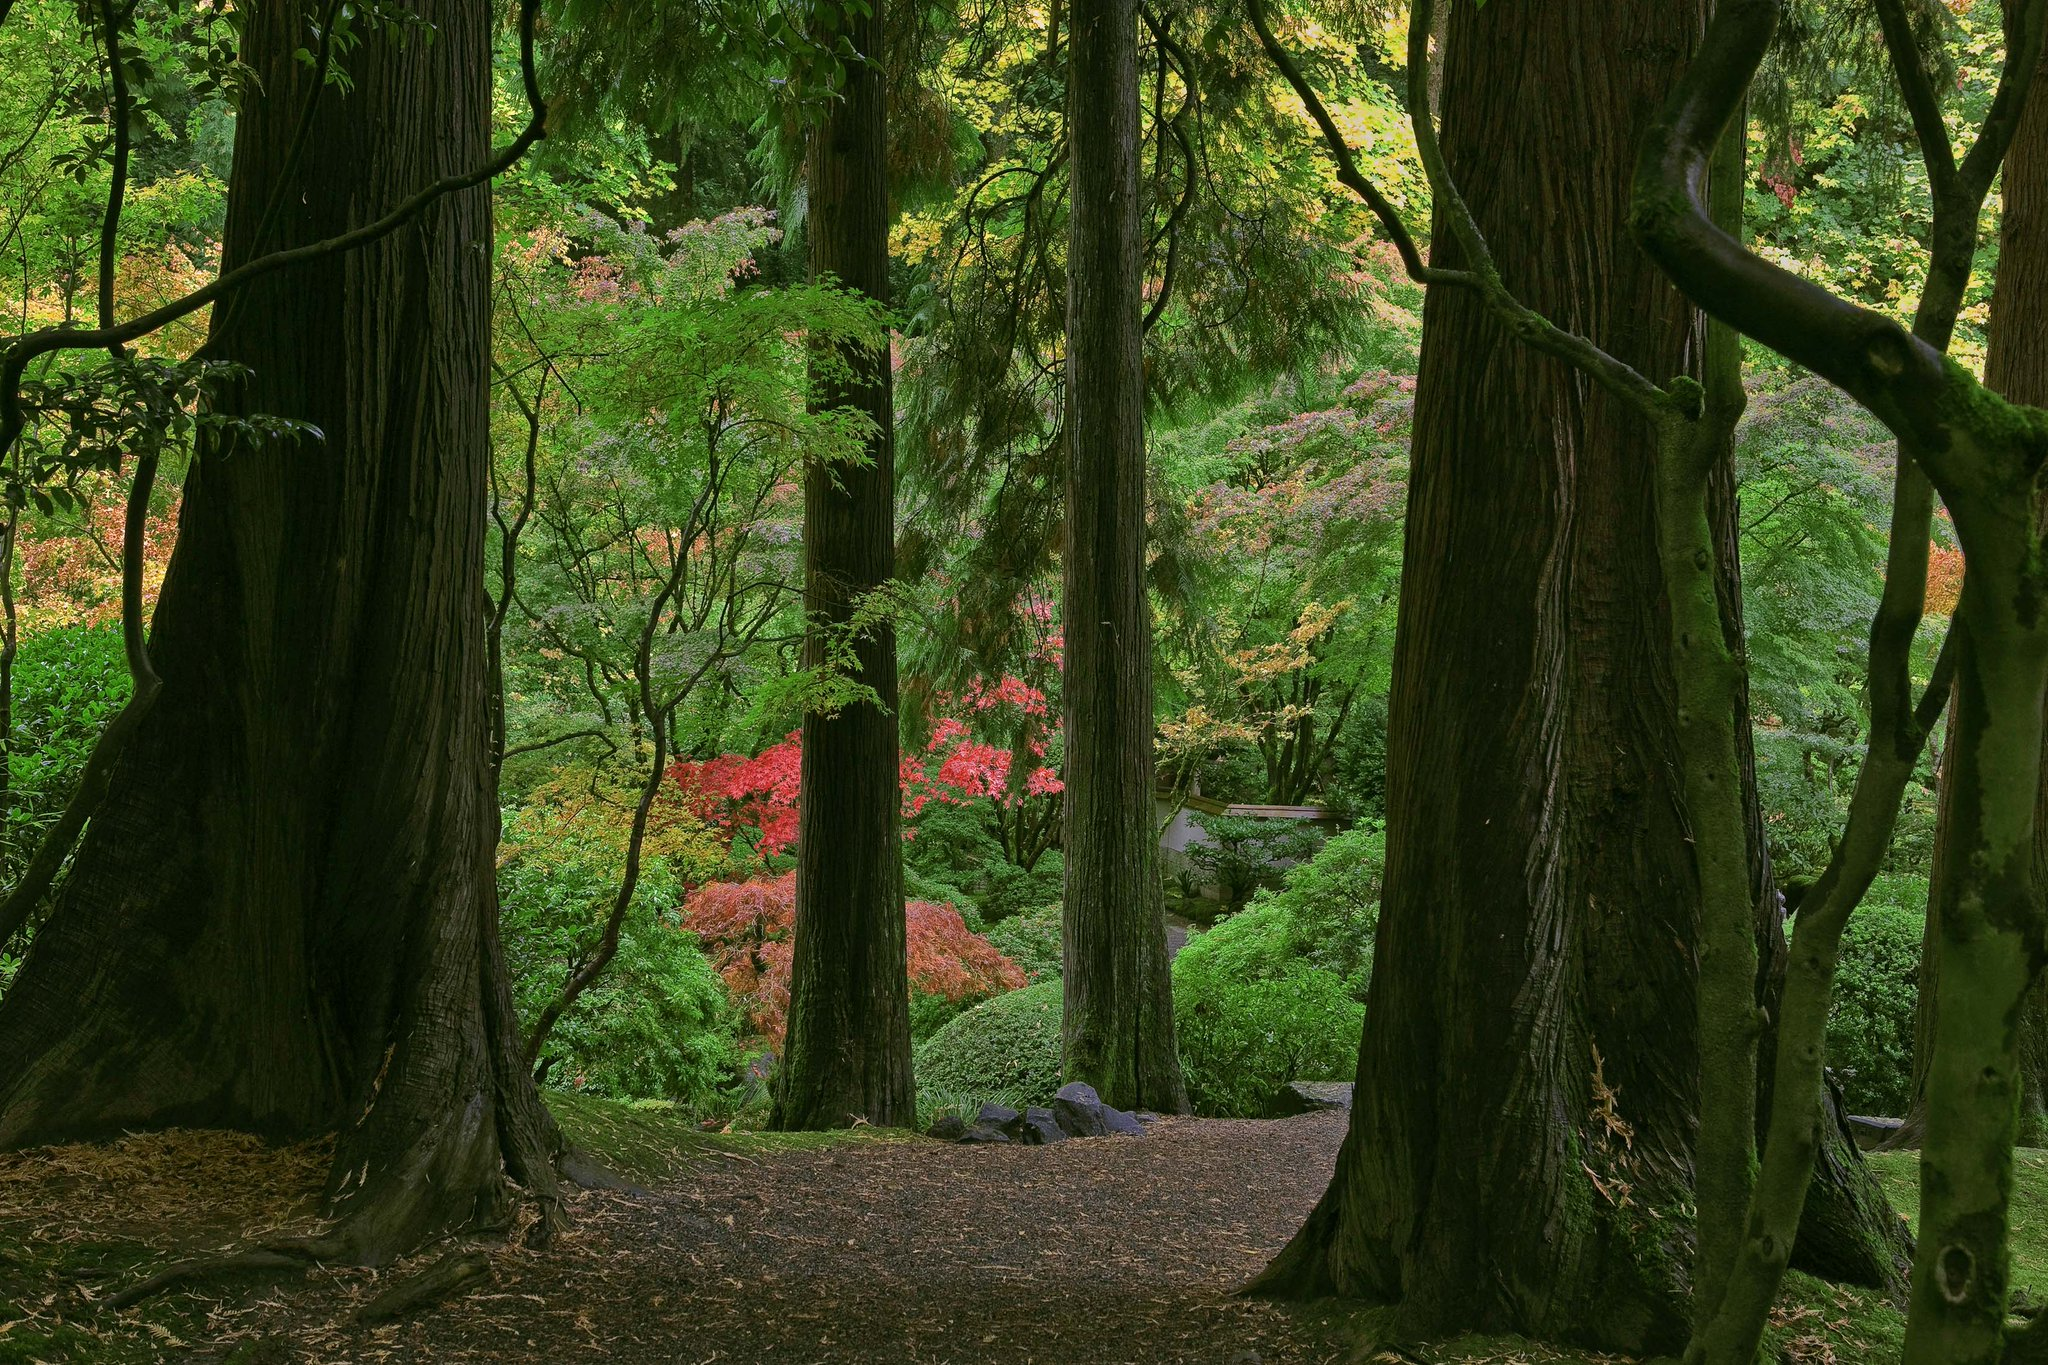 Did you know June was #GreatOutdoorsMonth? Celebrate close to home with a trip to WA Park and the Garden. http://t.co/rLZw2q25bt